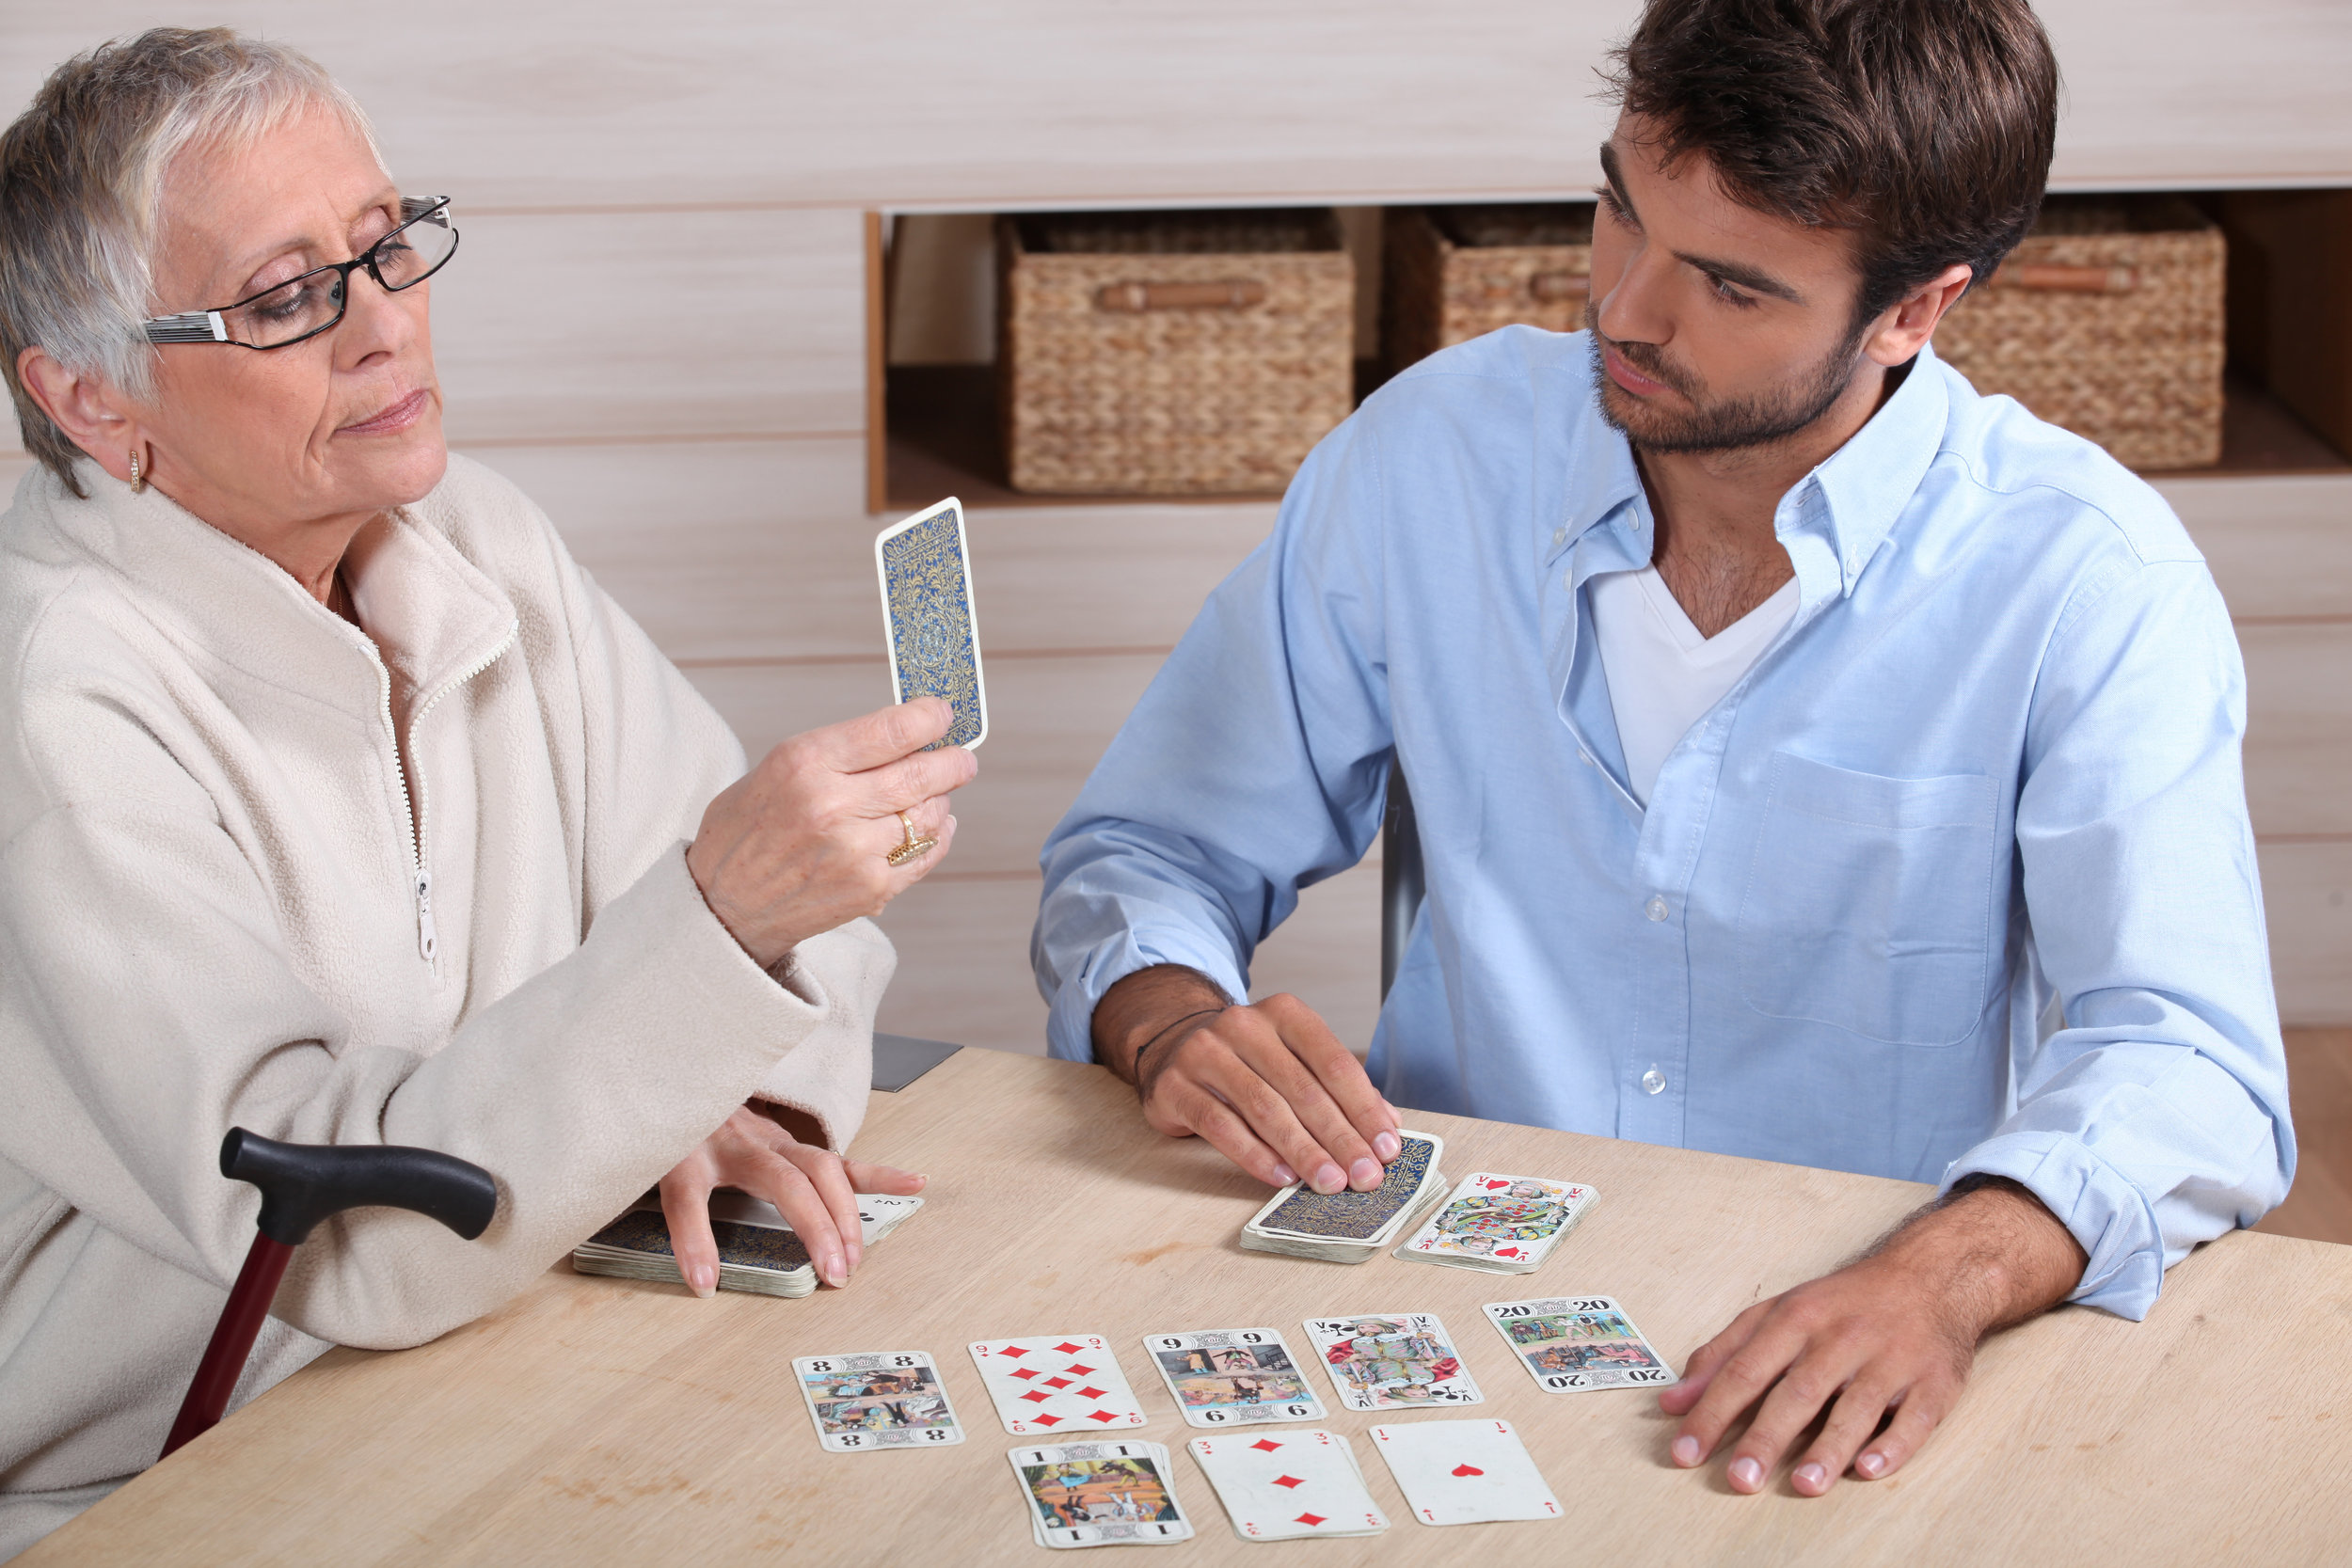 Card games are an excellent non-app option for cognitive stimulation, and have the added benefits of social communication.